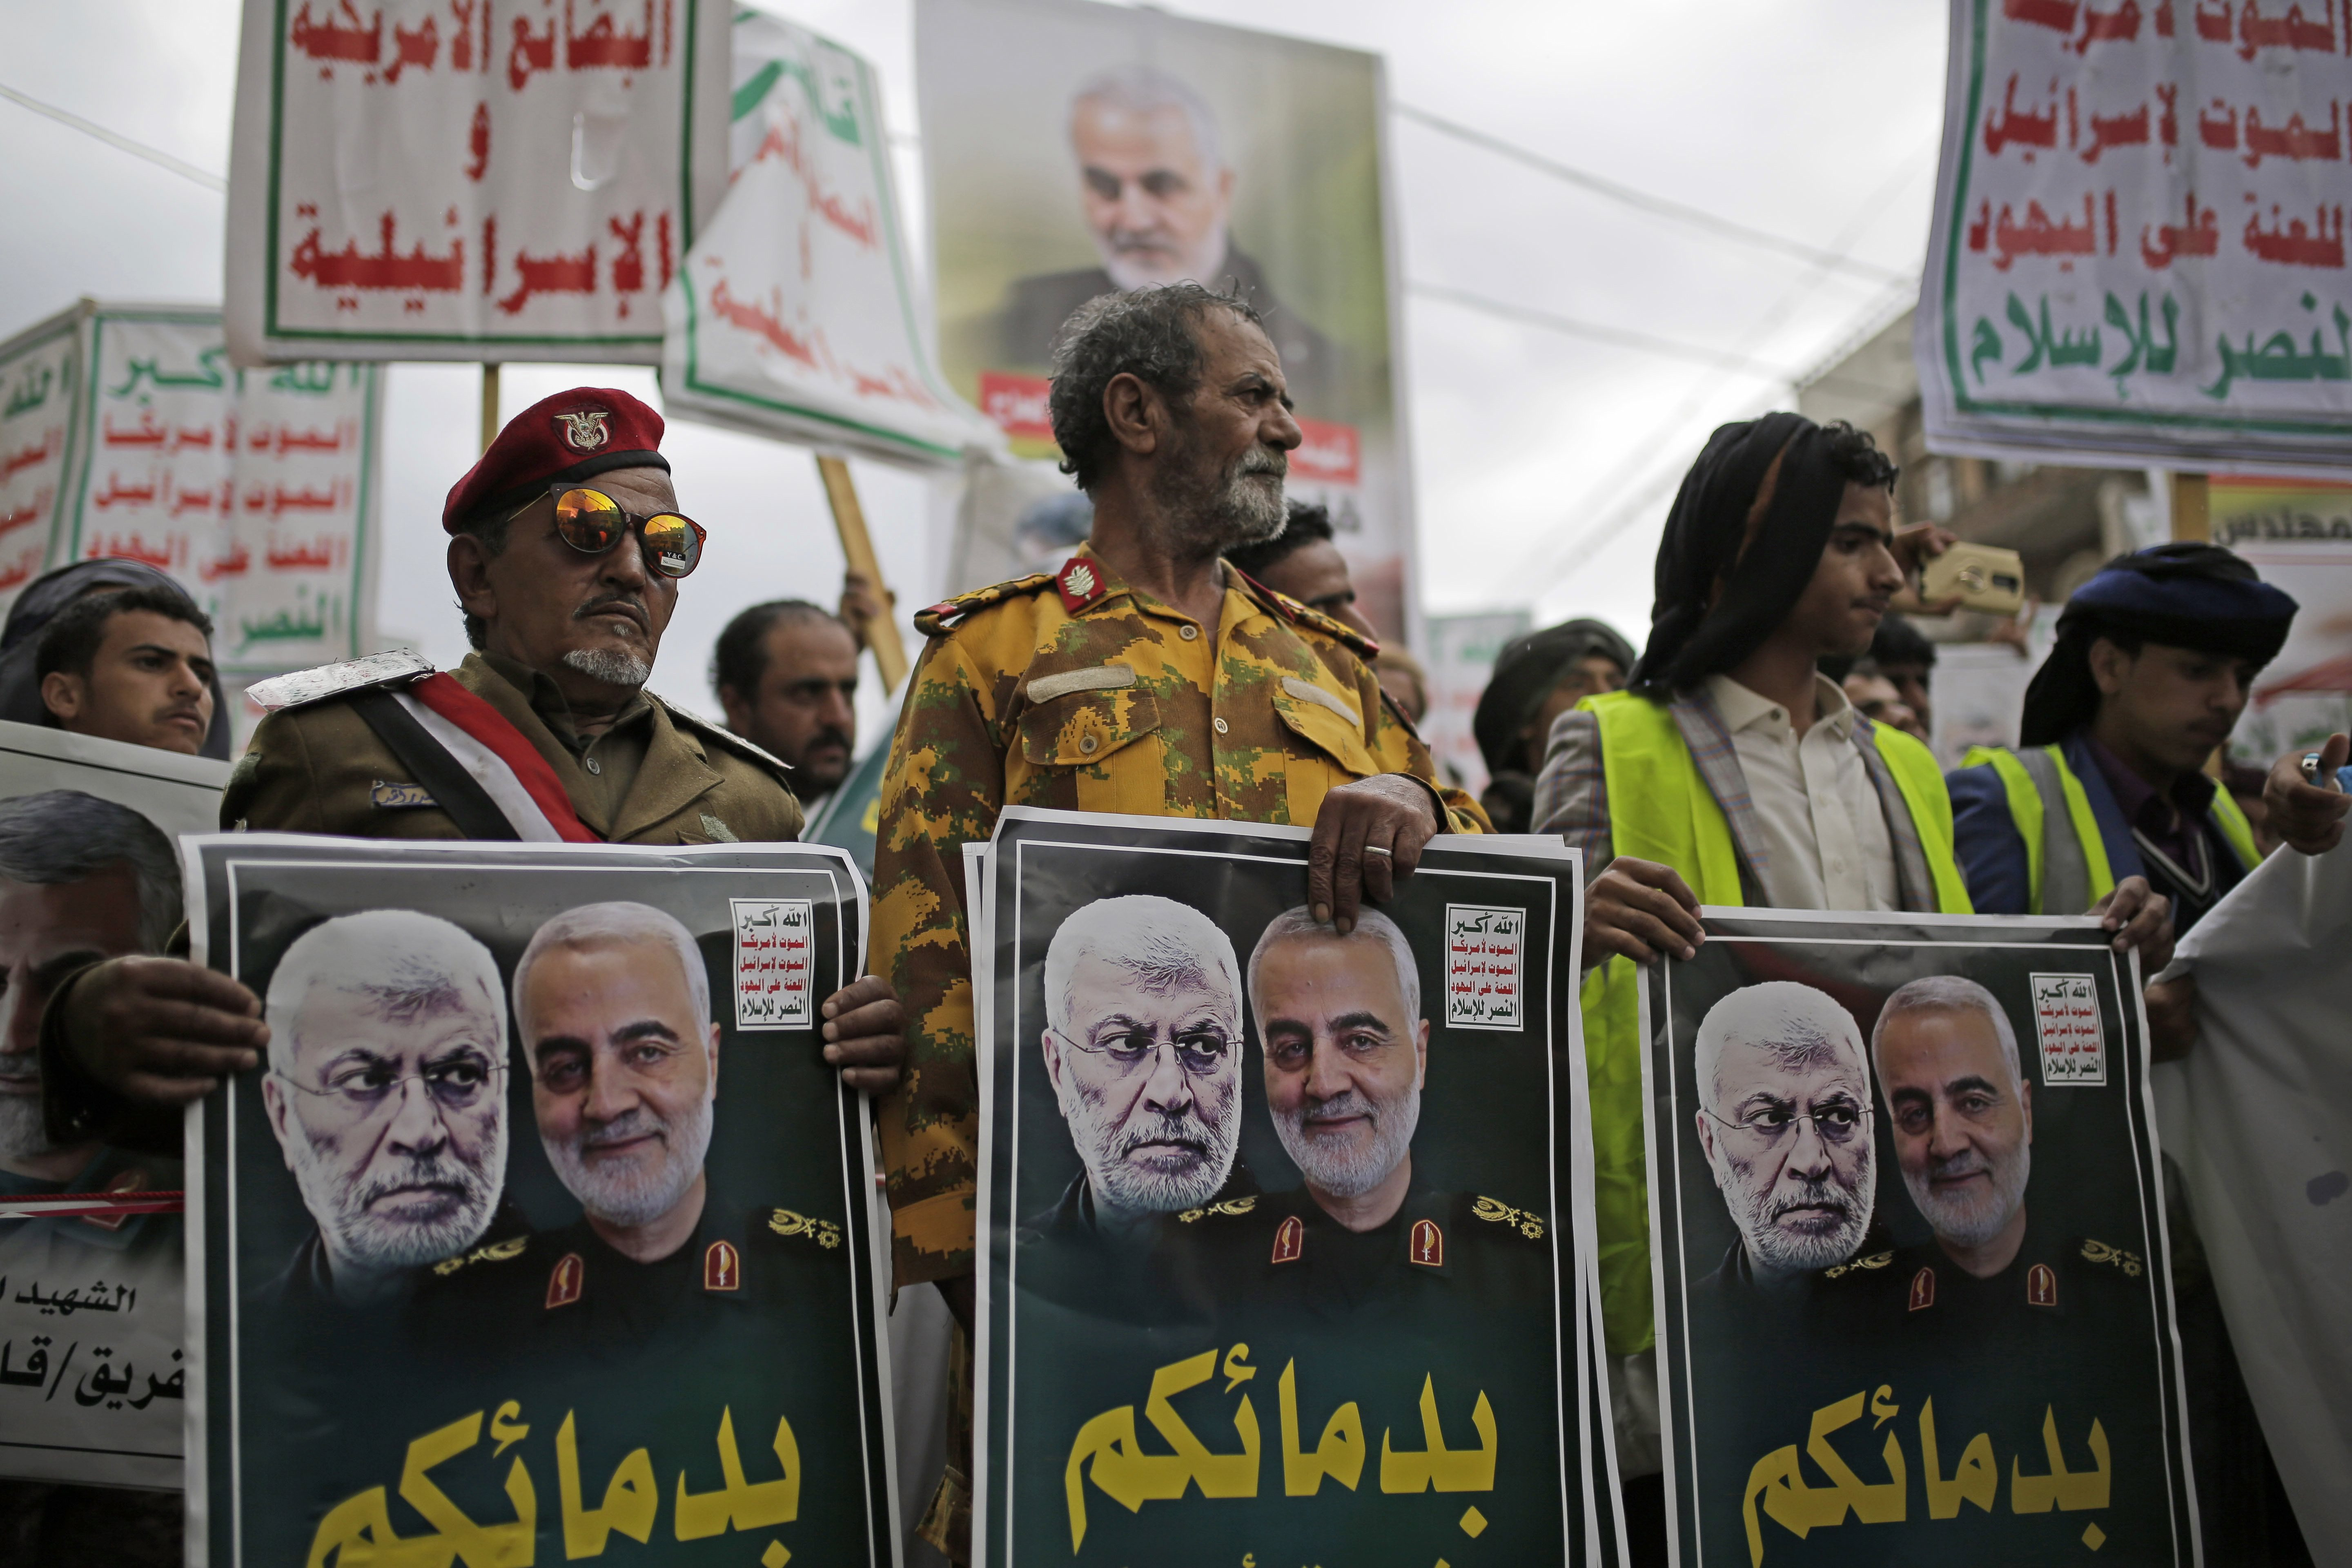 Yemeni Shiite Houti rebels mourn the termination of Iran's top general Qassem Soleimani and his henchman Abu Mahdi al-Muhandis by a targeted U.S. missile strike. The two were in charge of Iran's imperialist military projects in Lebanon, Syria, Iraq, Gaza and Yemen and responsible for hundreds of American deaths.